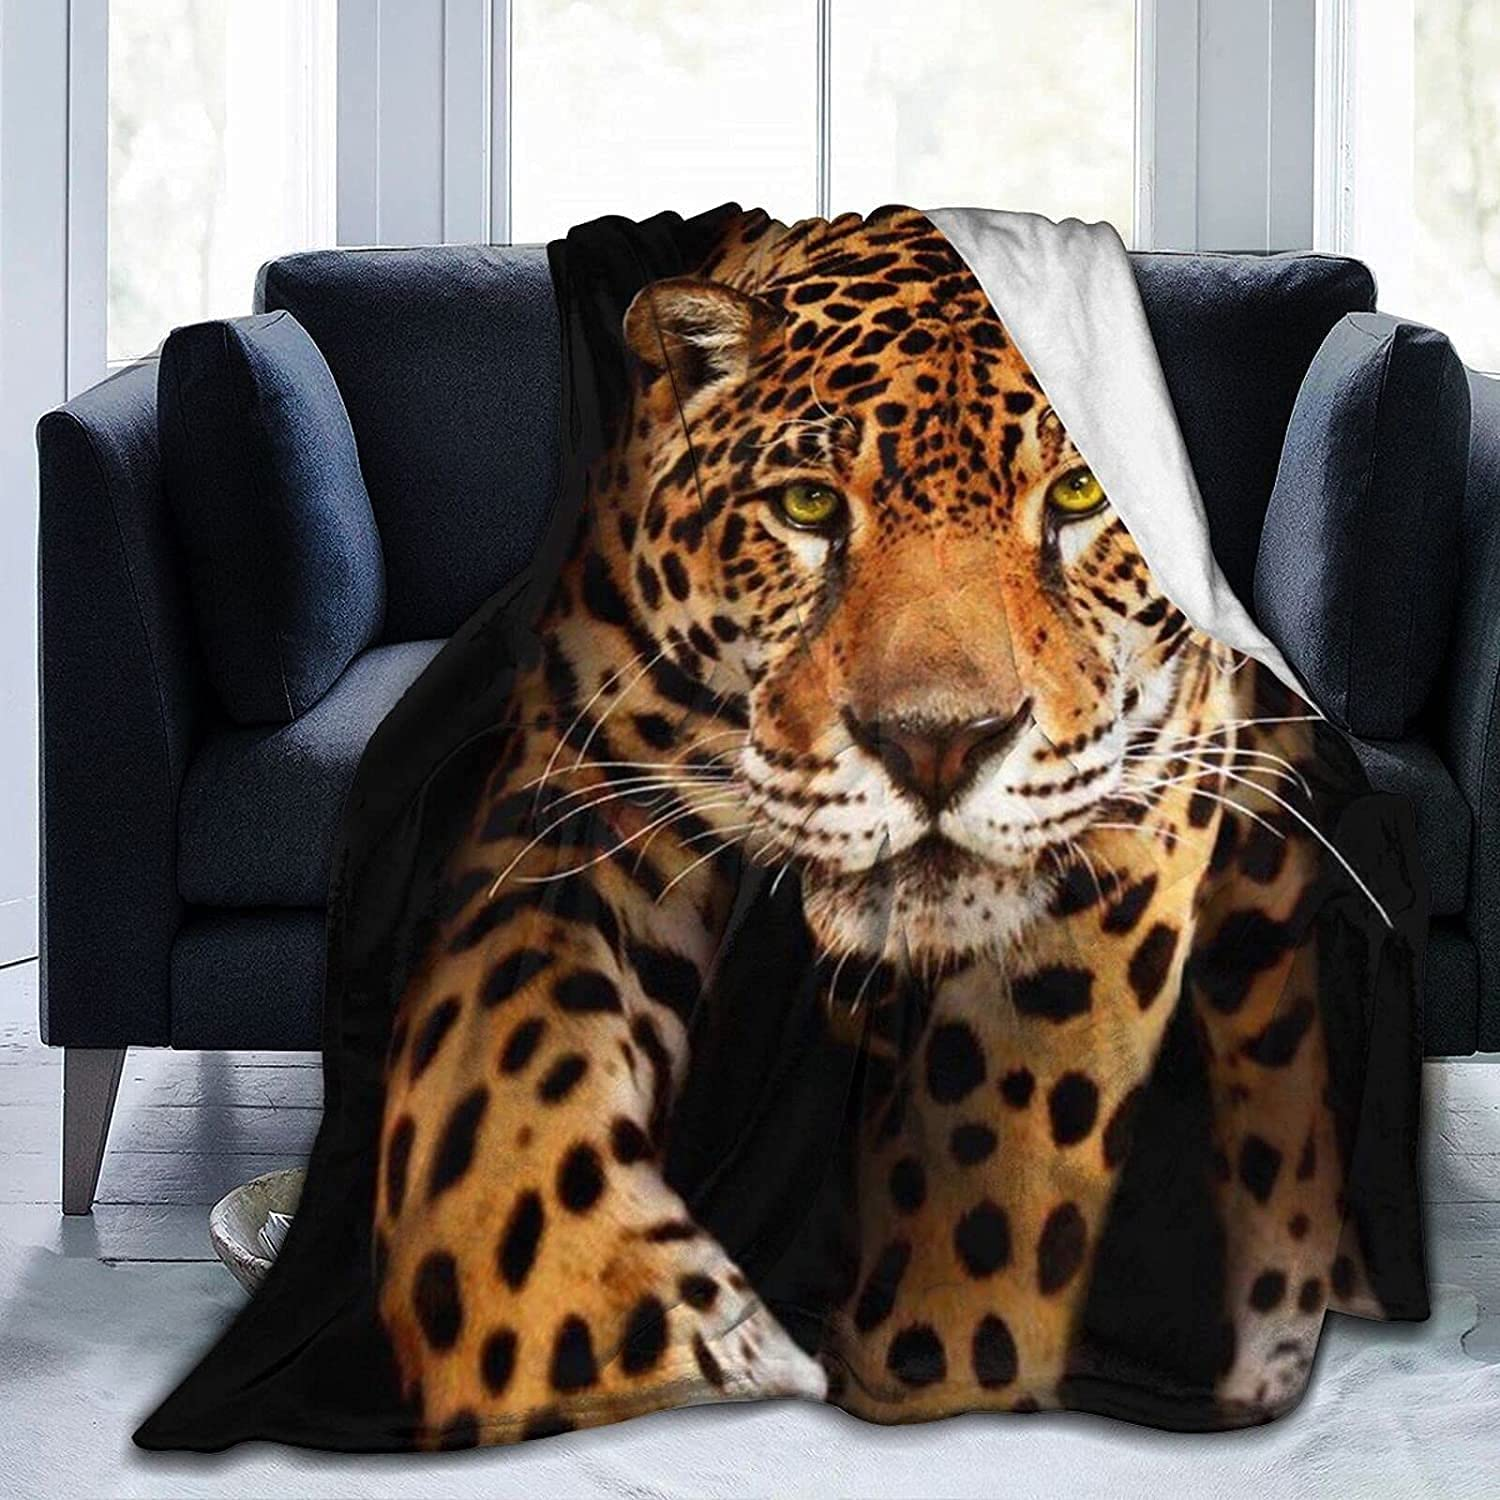 Jaguar Throw Blankets for Couch and Warm Los Angeles Mall Cl Mail order Throws Keep